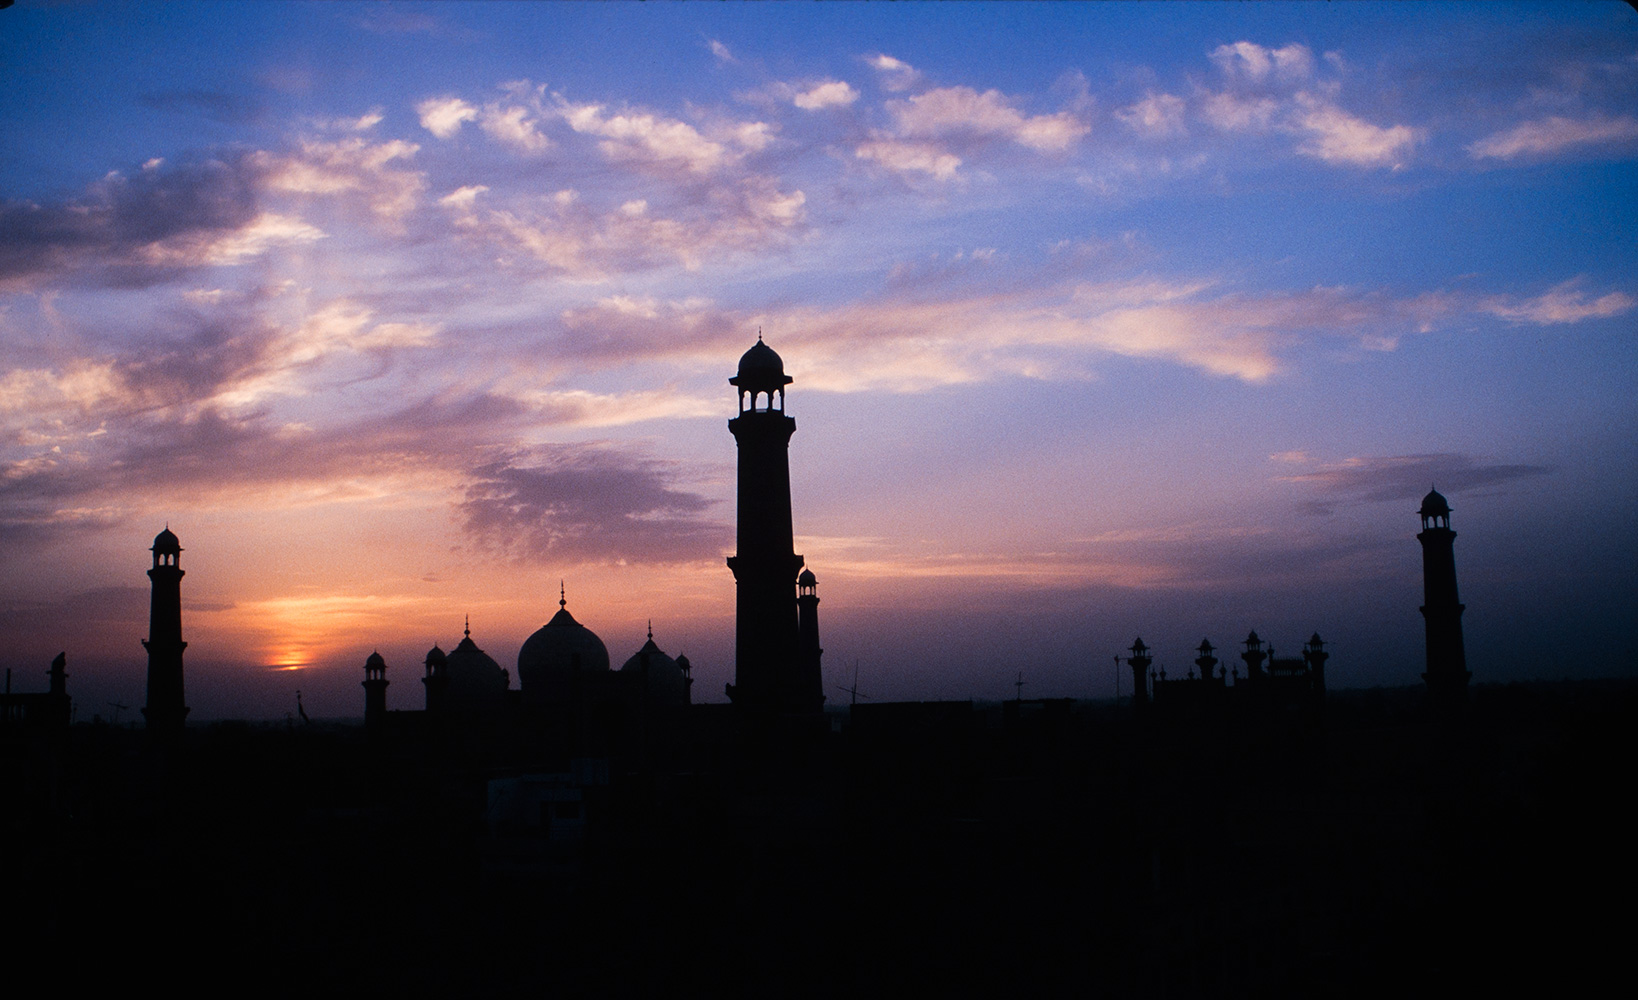 bad_shahi_masjid_sunset_lahore_97RVP